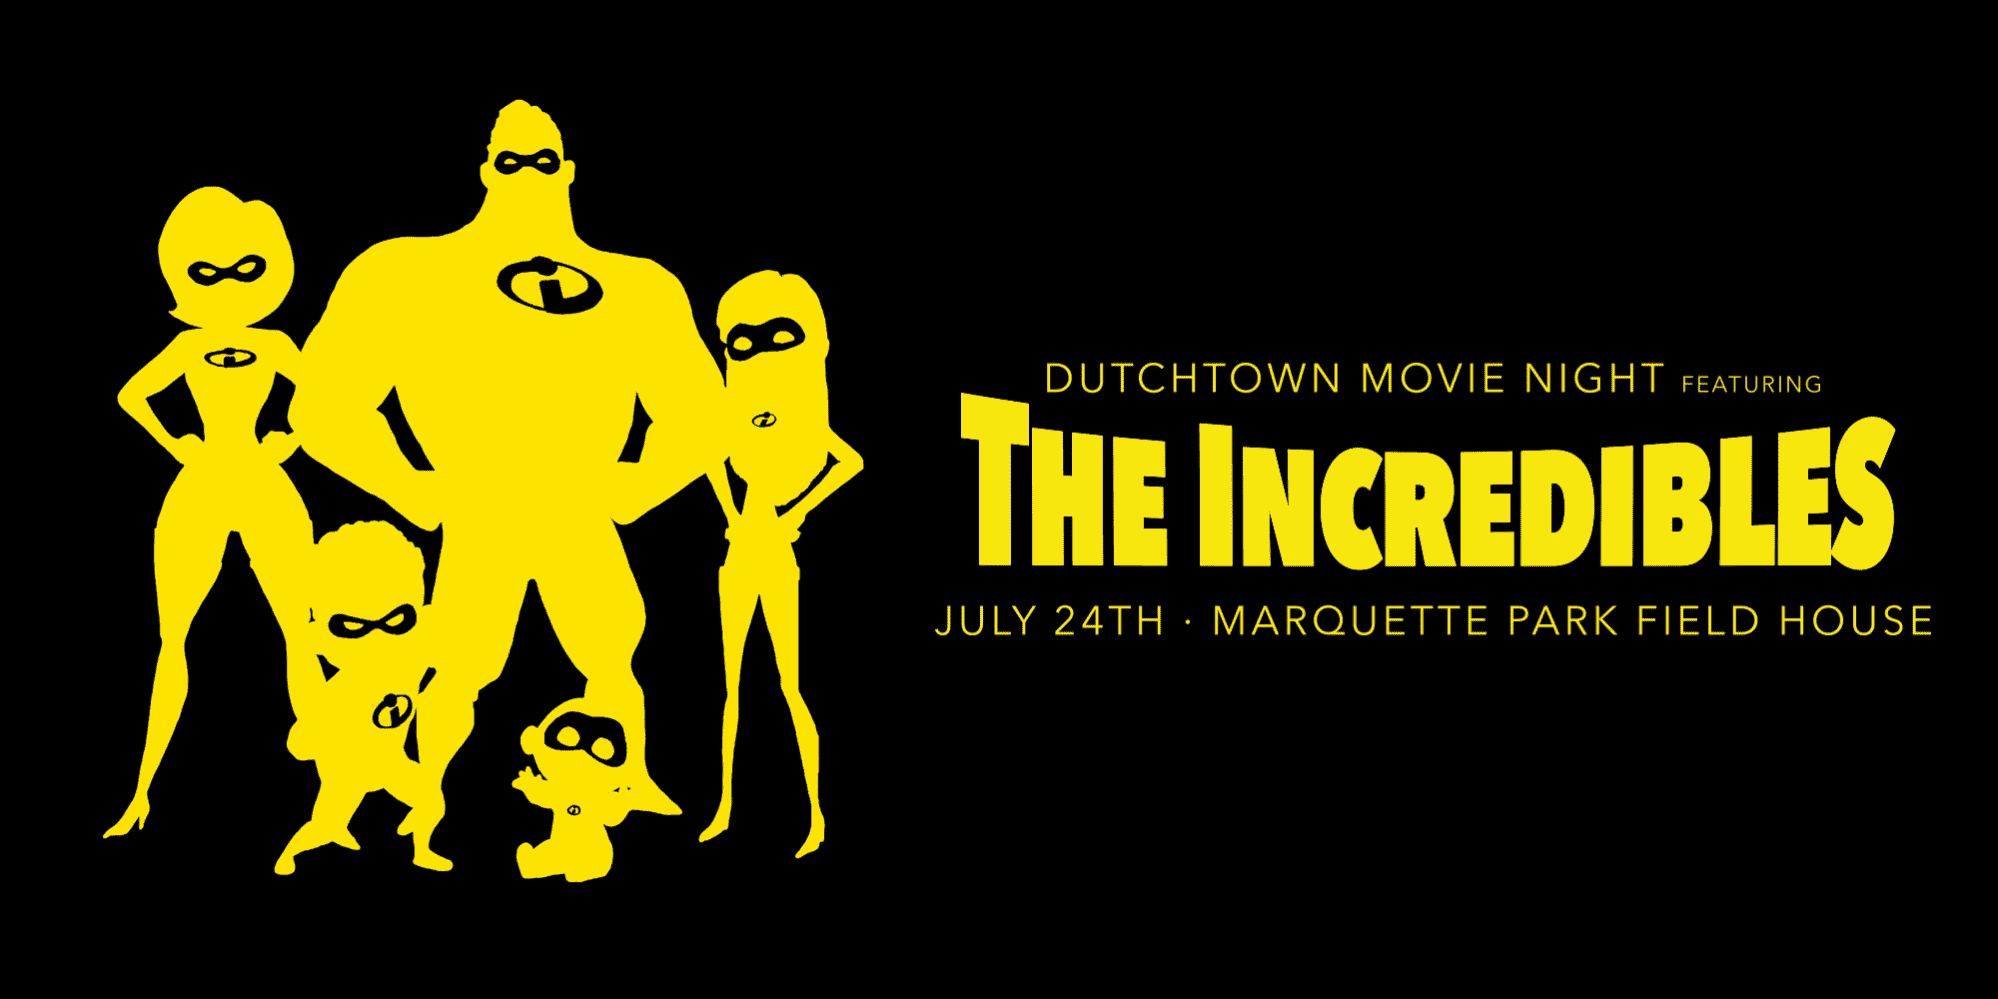 The Incredibles at Dutchtown Mivie Night on July 24th, 2021.